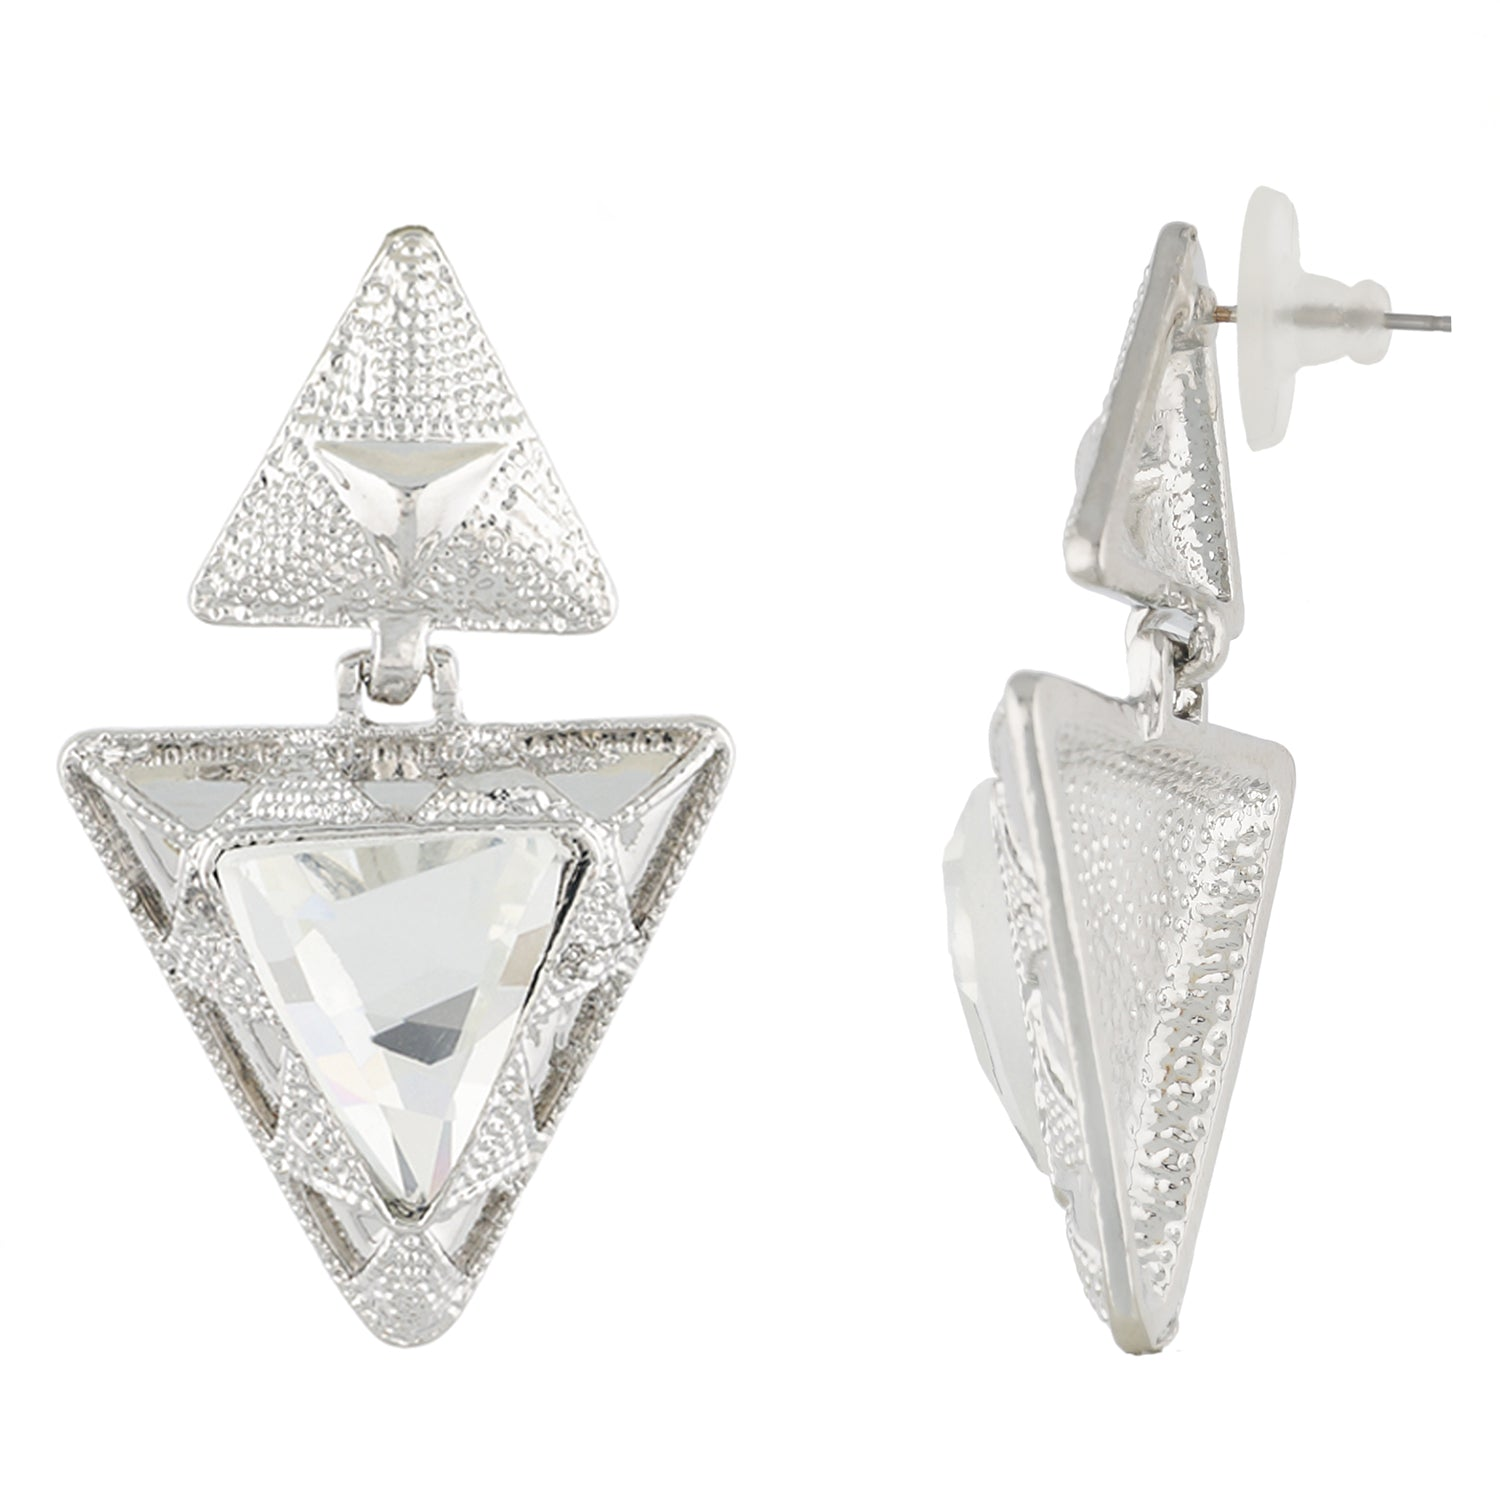 White Colour Triangular Necklace and Earrings for Girls and Women